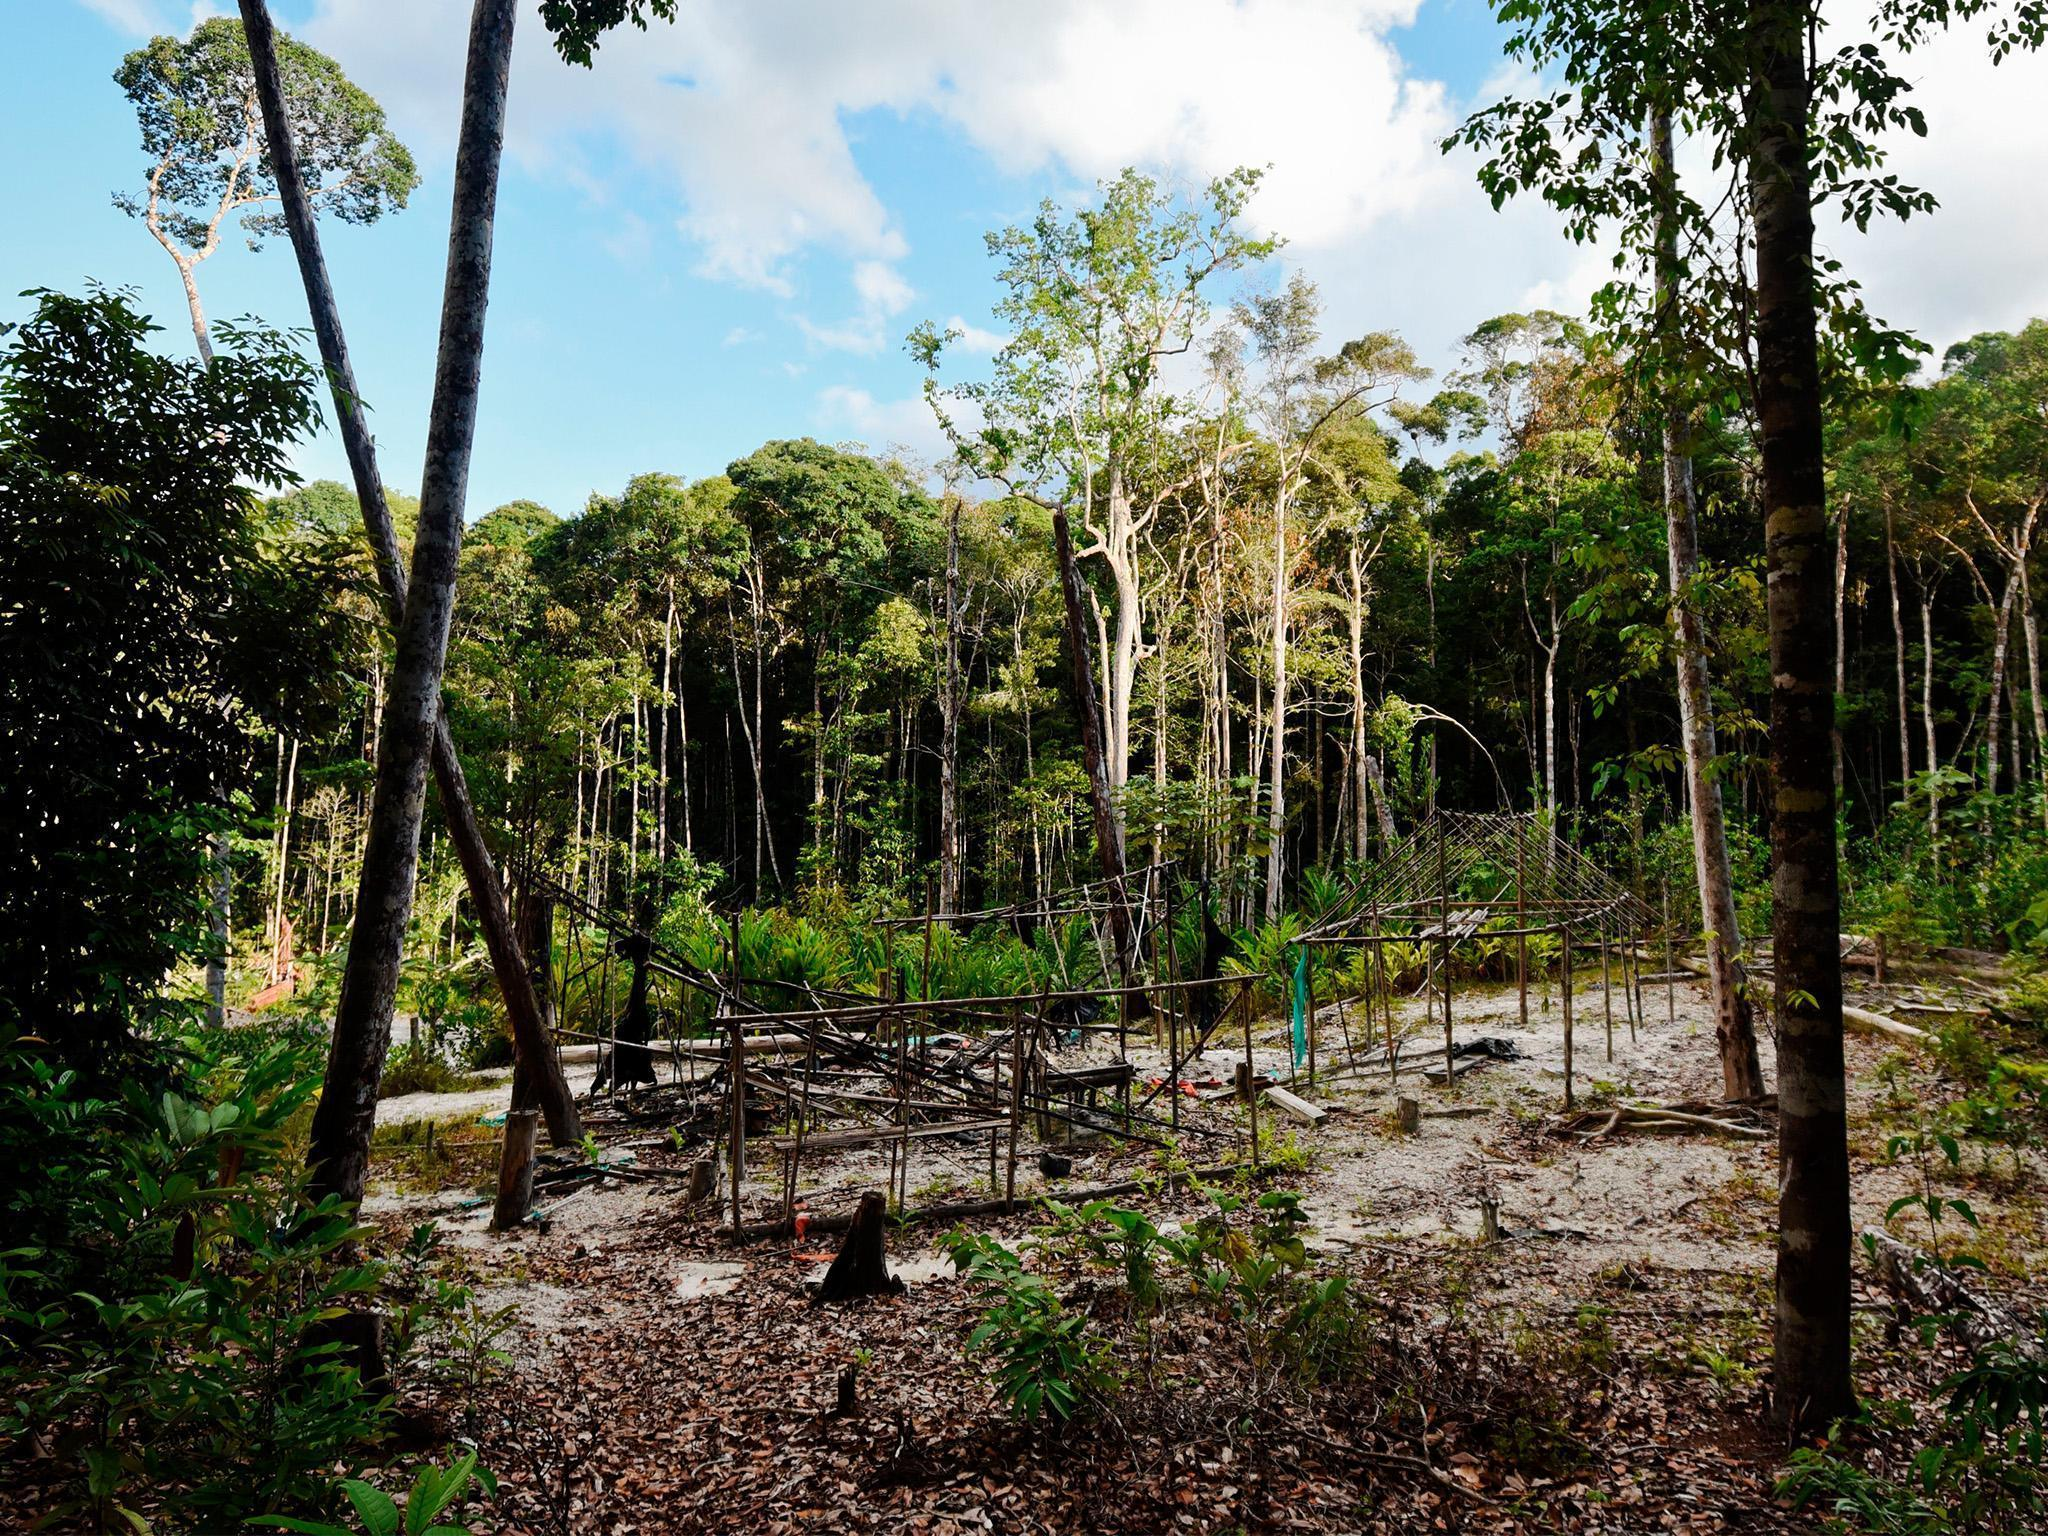 rainforest latest news breaking stories and comment the independent